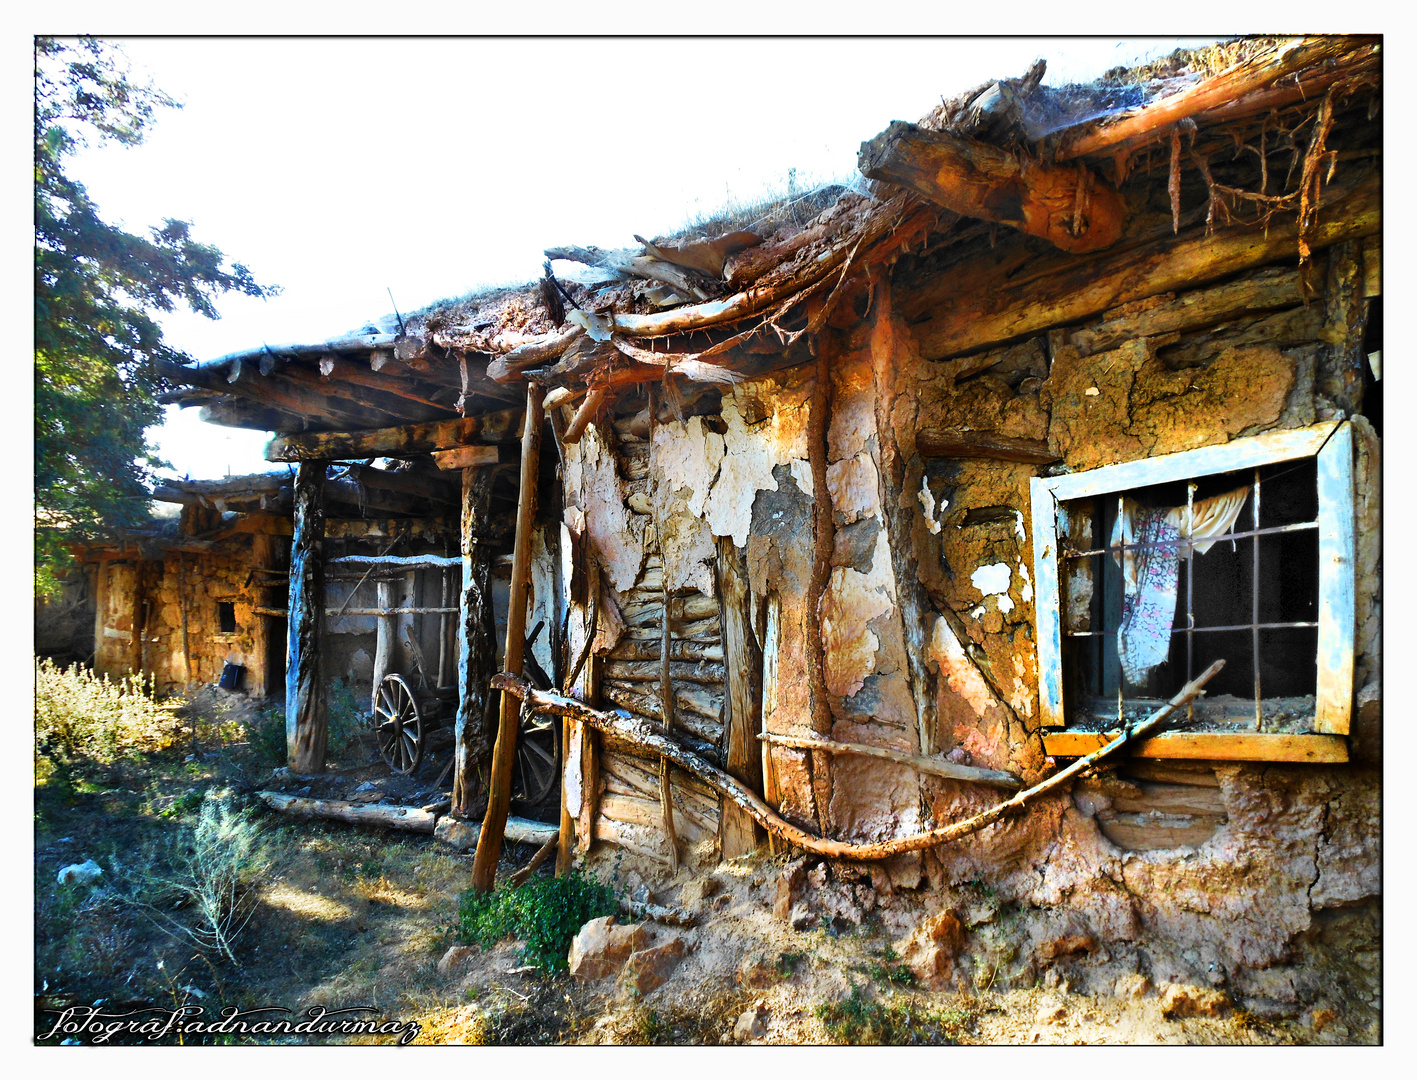 the abandoned houses, similar to the abandoned people, memories together slowly die.